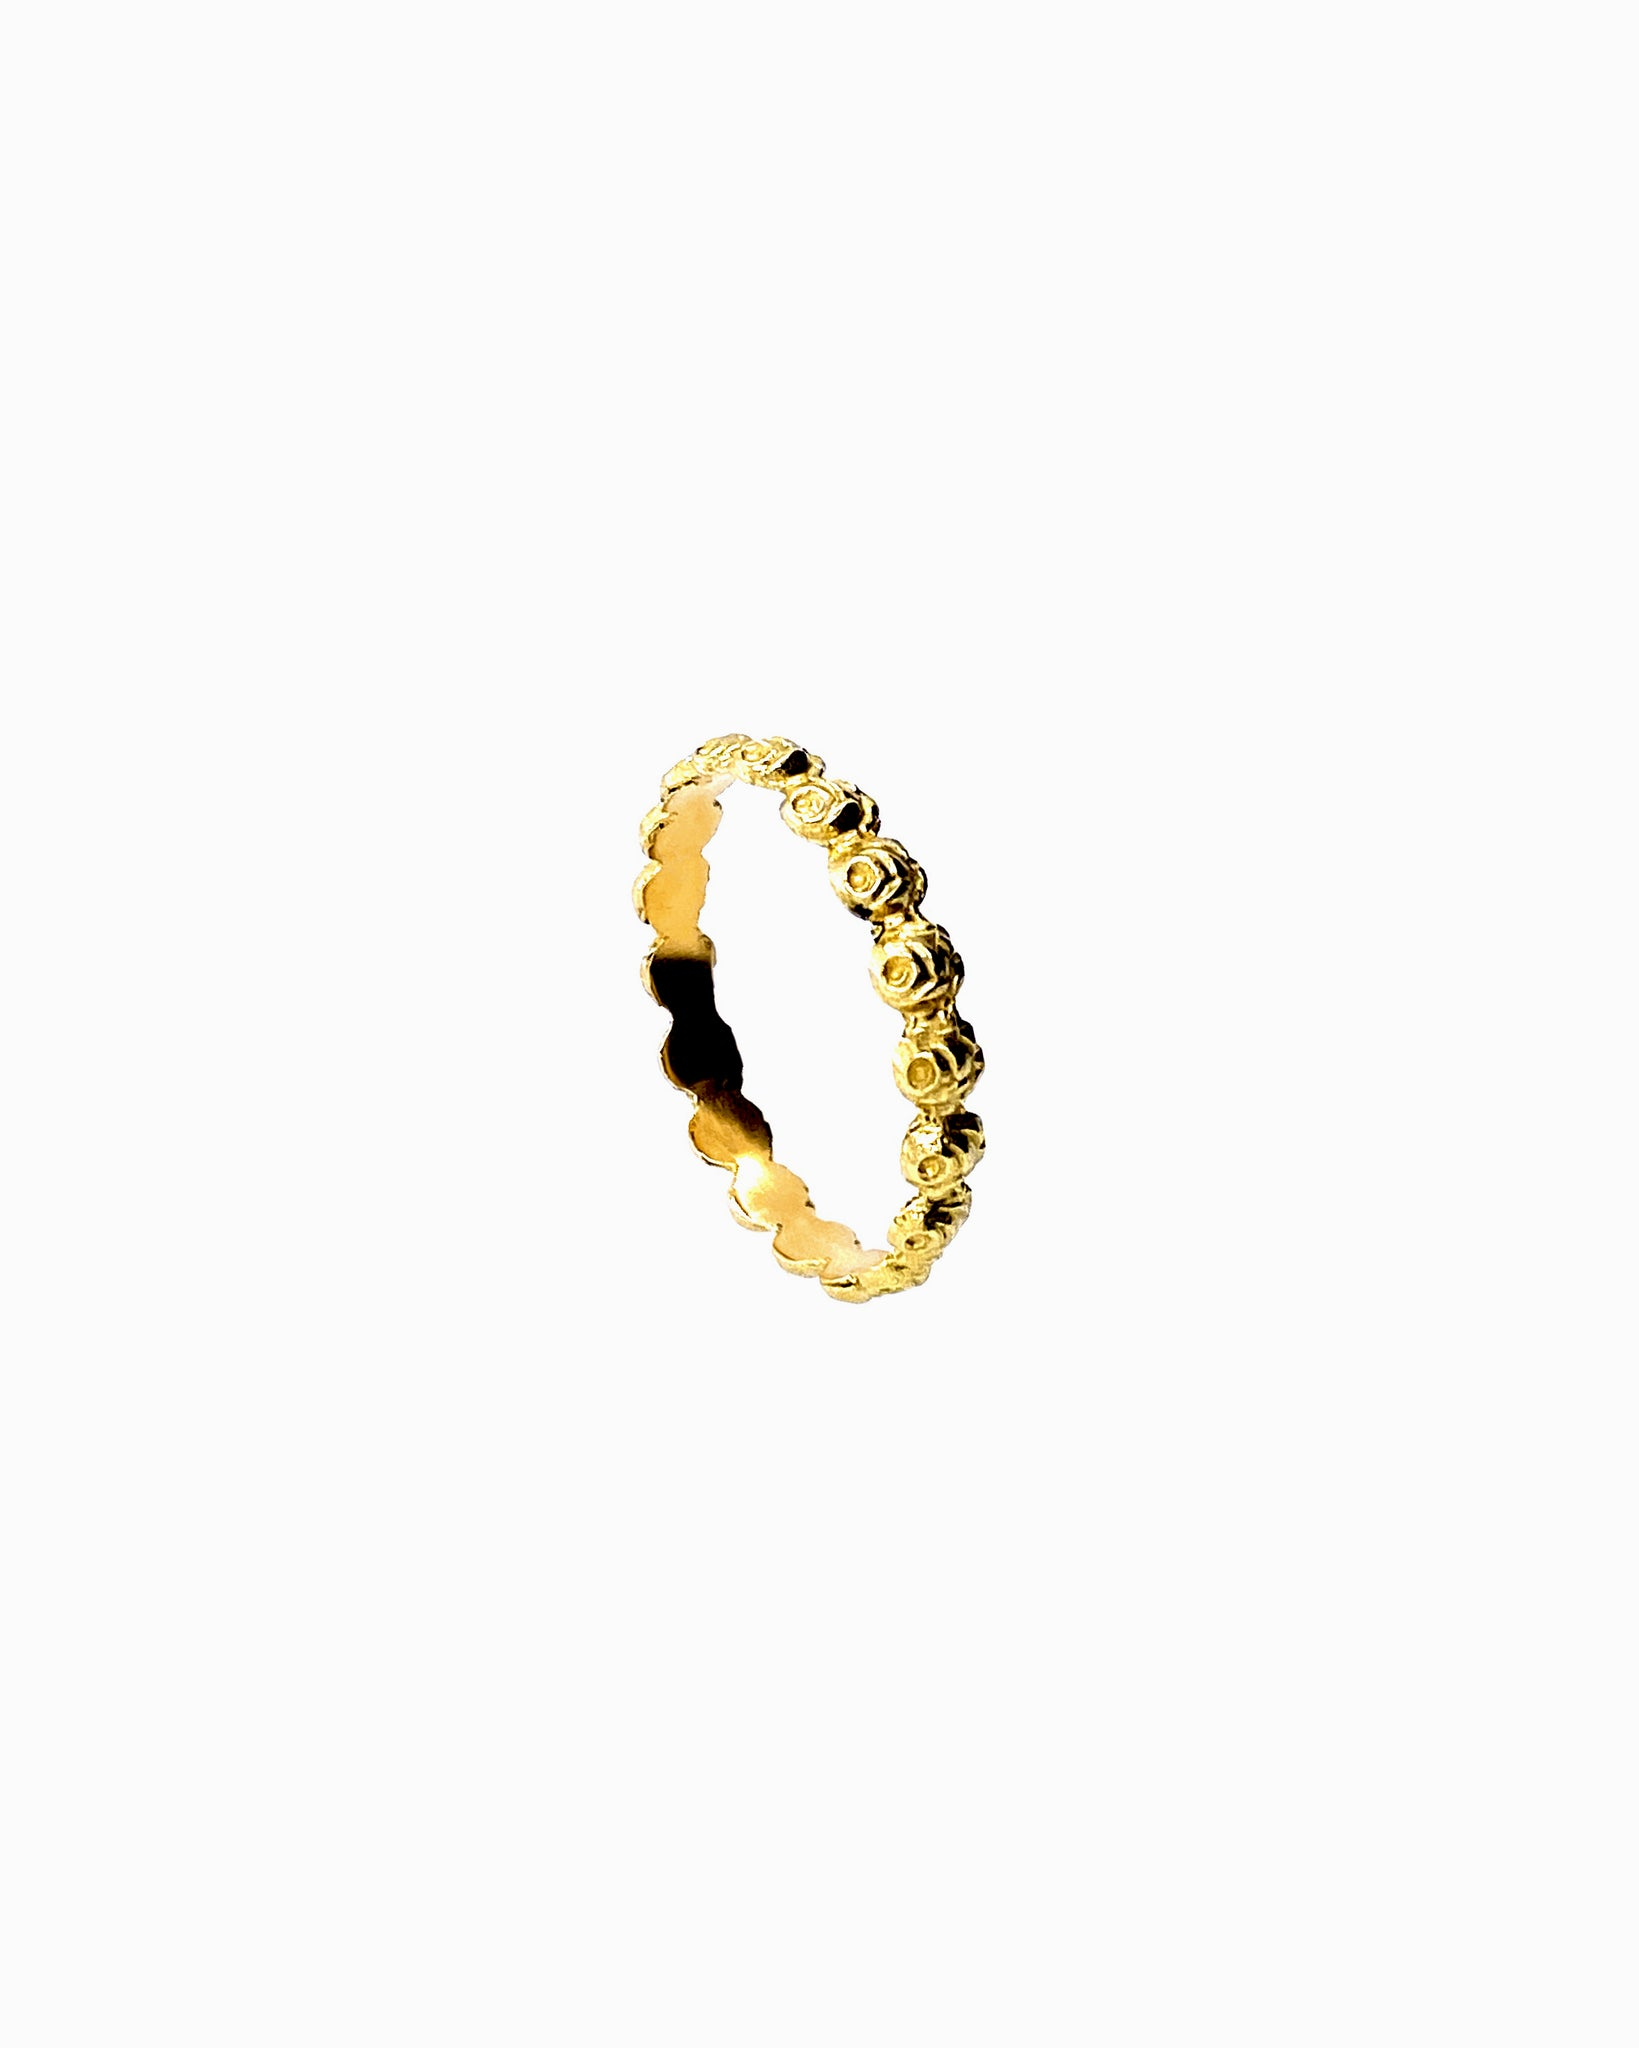 Rose ring 18k gold - IDAMARI